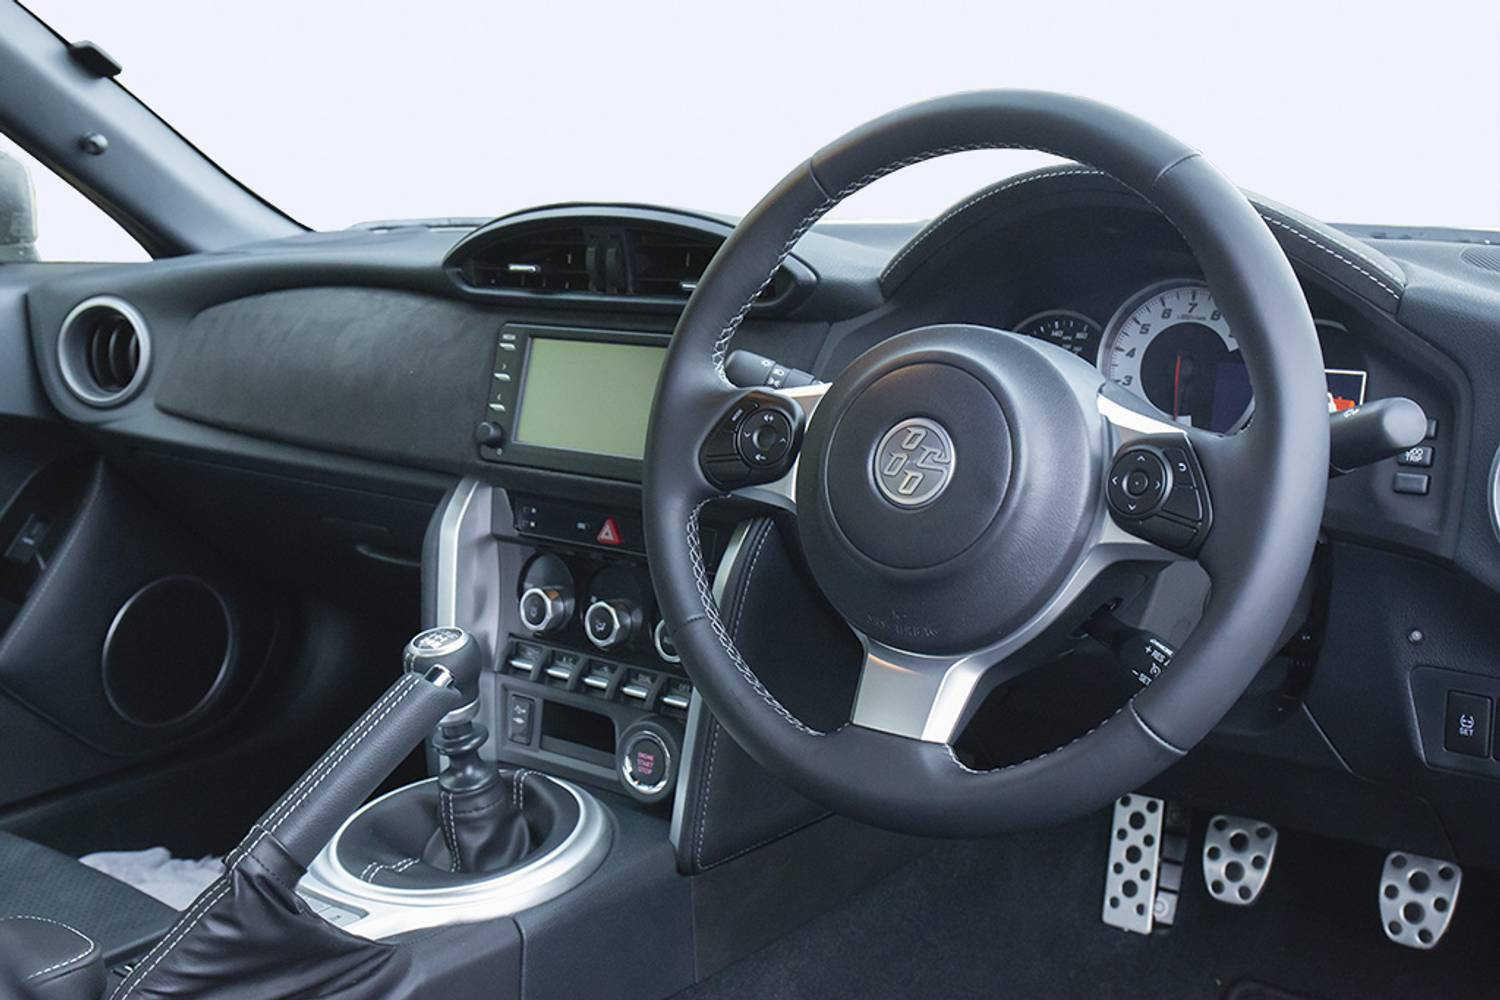 Toyota GT86 Coupe 2.0 D-4S 2dr interior